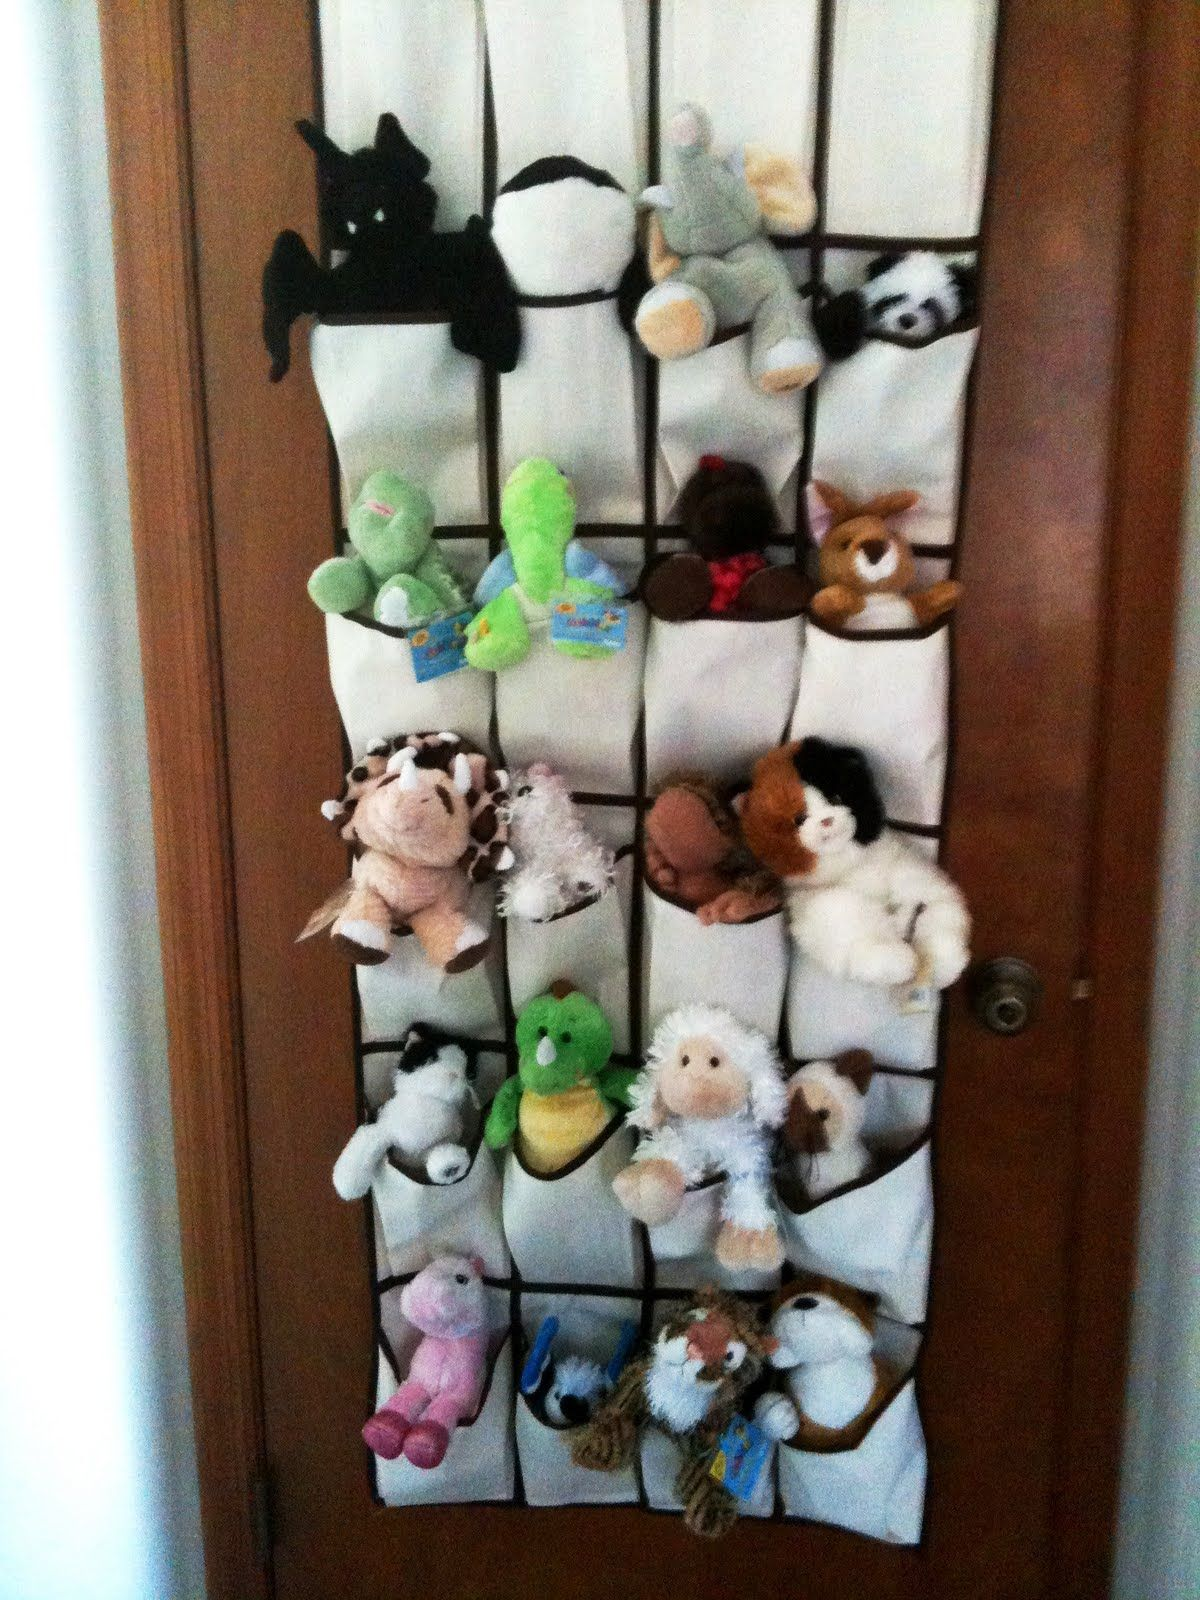 Over 100 Webkinz And Counting, Running Out Of Room For